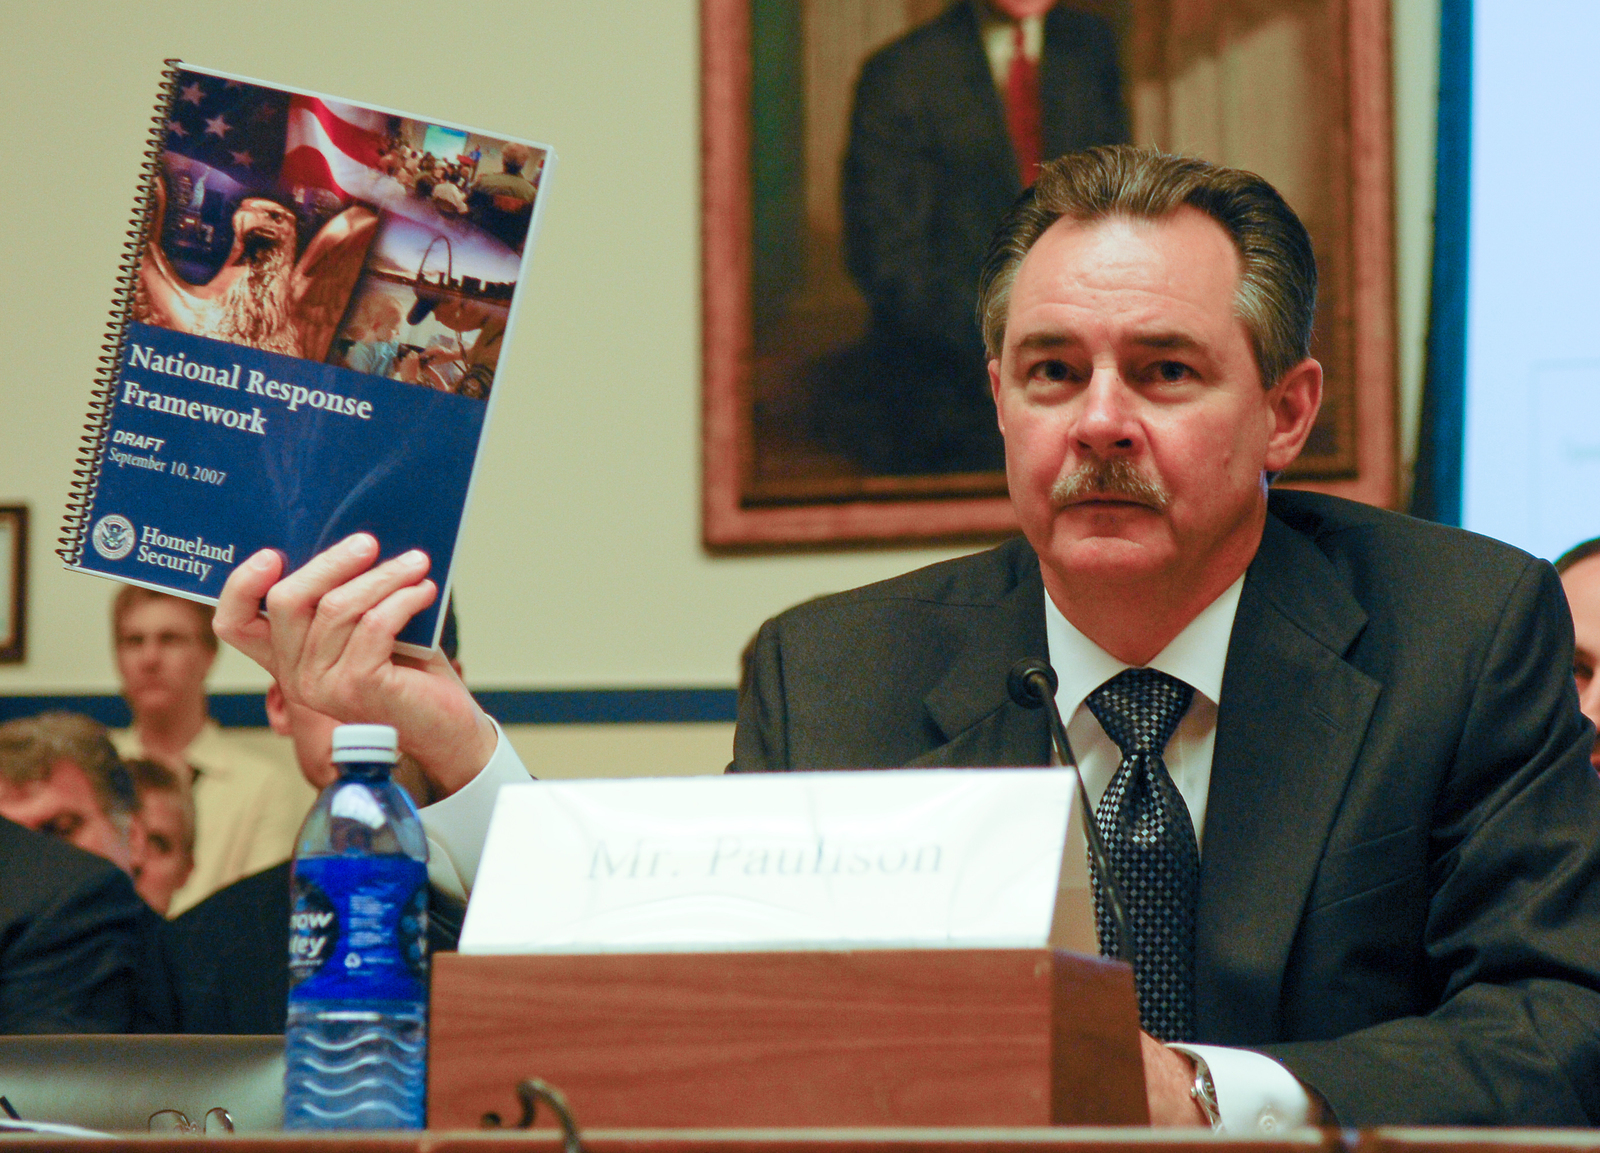 """Washington, DC, September 11, 2007 -- FEMA Administrator R. David Paulison holds up a copy of the National Response Framework at The House Transportation and Infrastructure, Subcommittee on Economic Development, Public Buildings and Emergency Management hearing on """"Readiness in the Post Katrina and Post 9/11 World:  An Evaluation of the New National Response Framework"""".  FEMA/Bill Koplitz"""